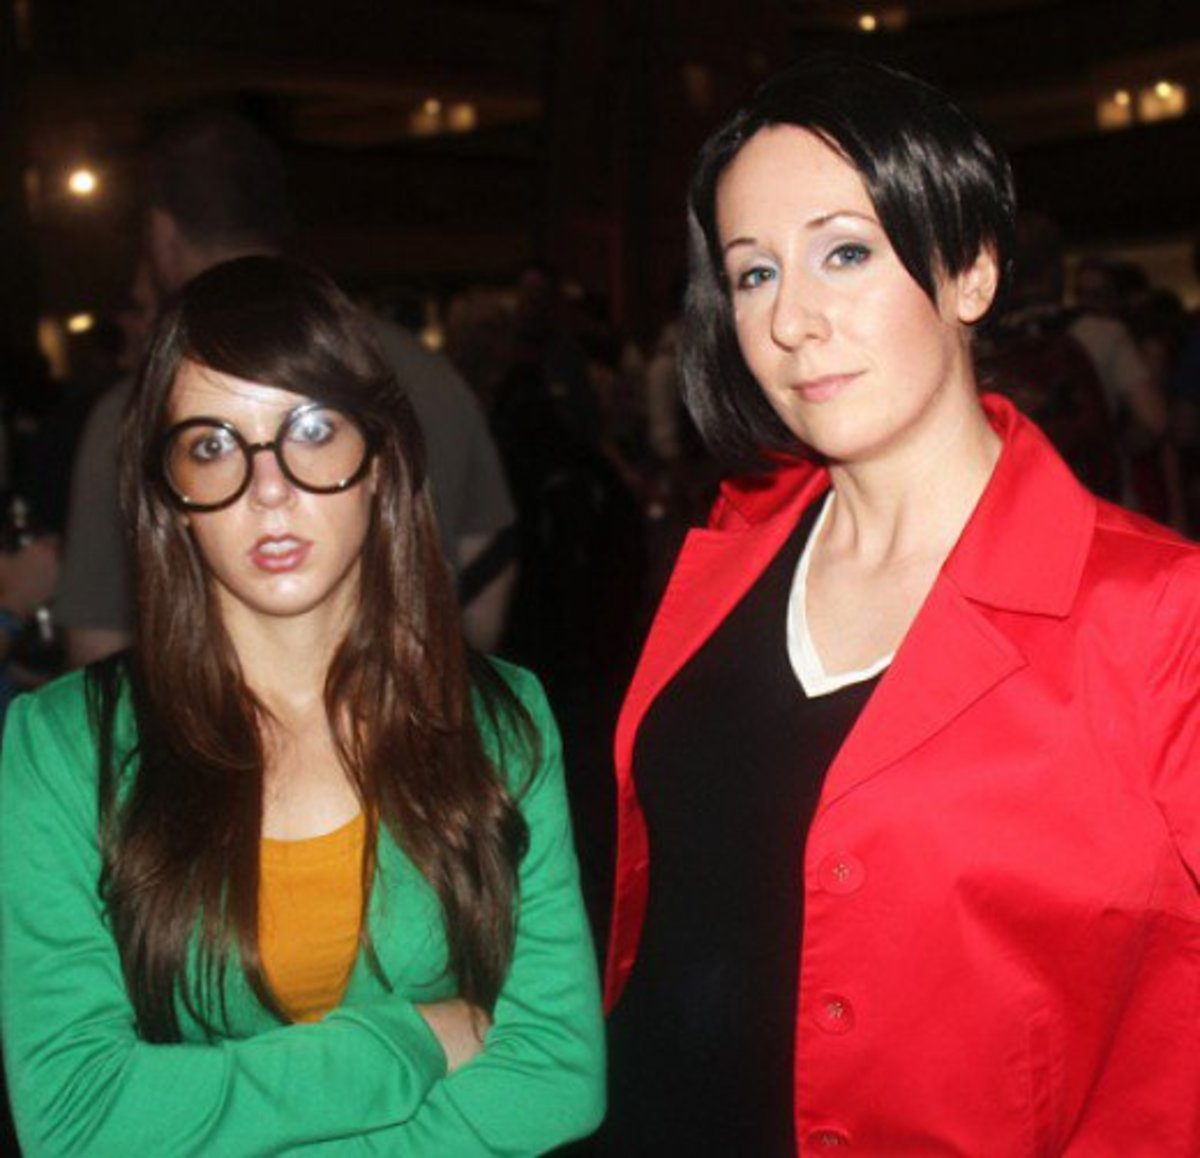 Daria and Lane Costume